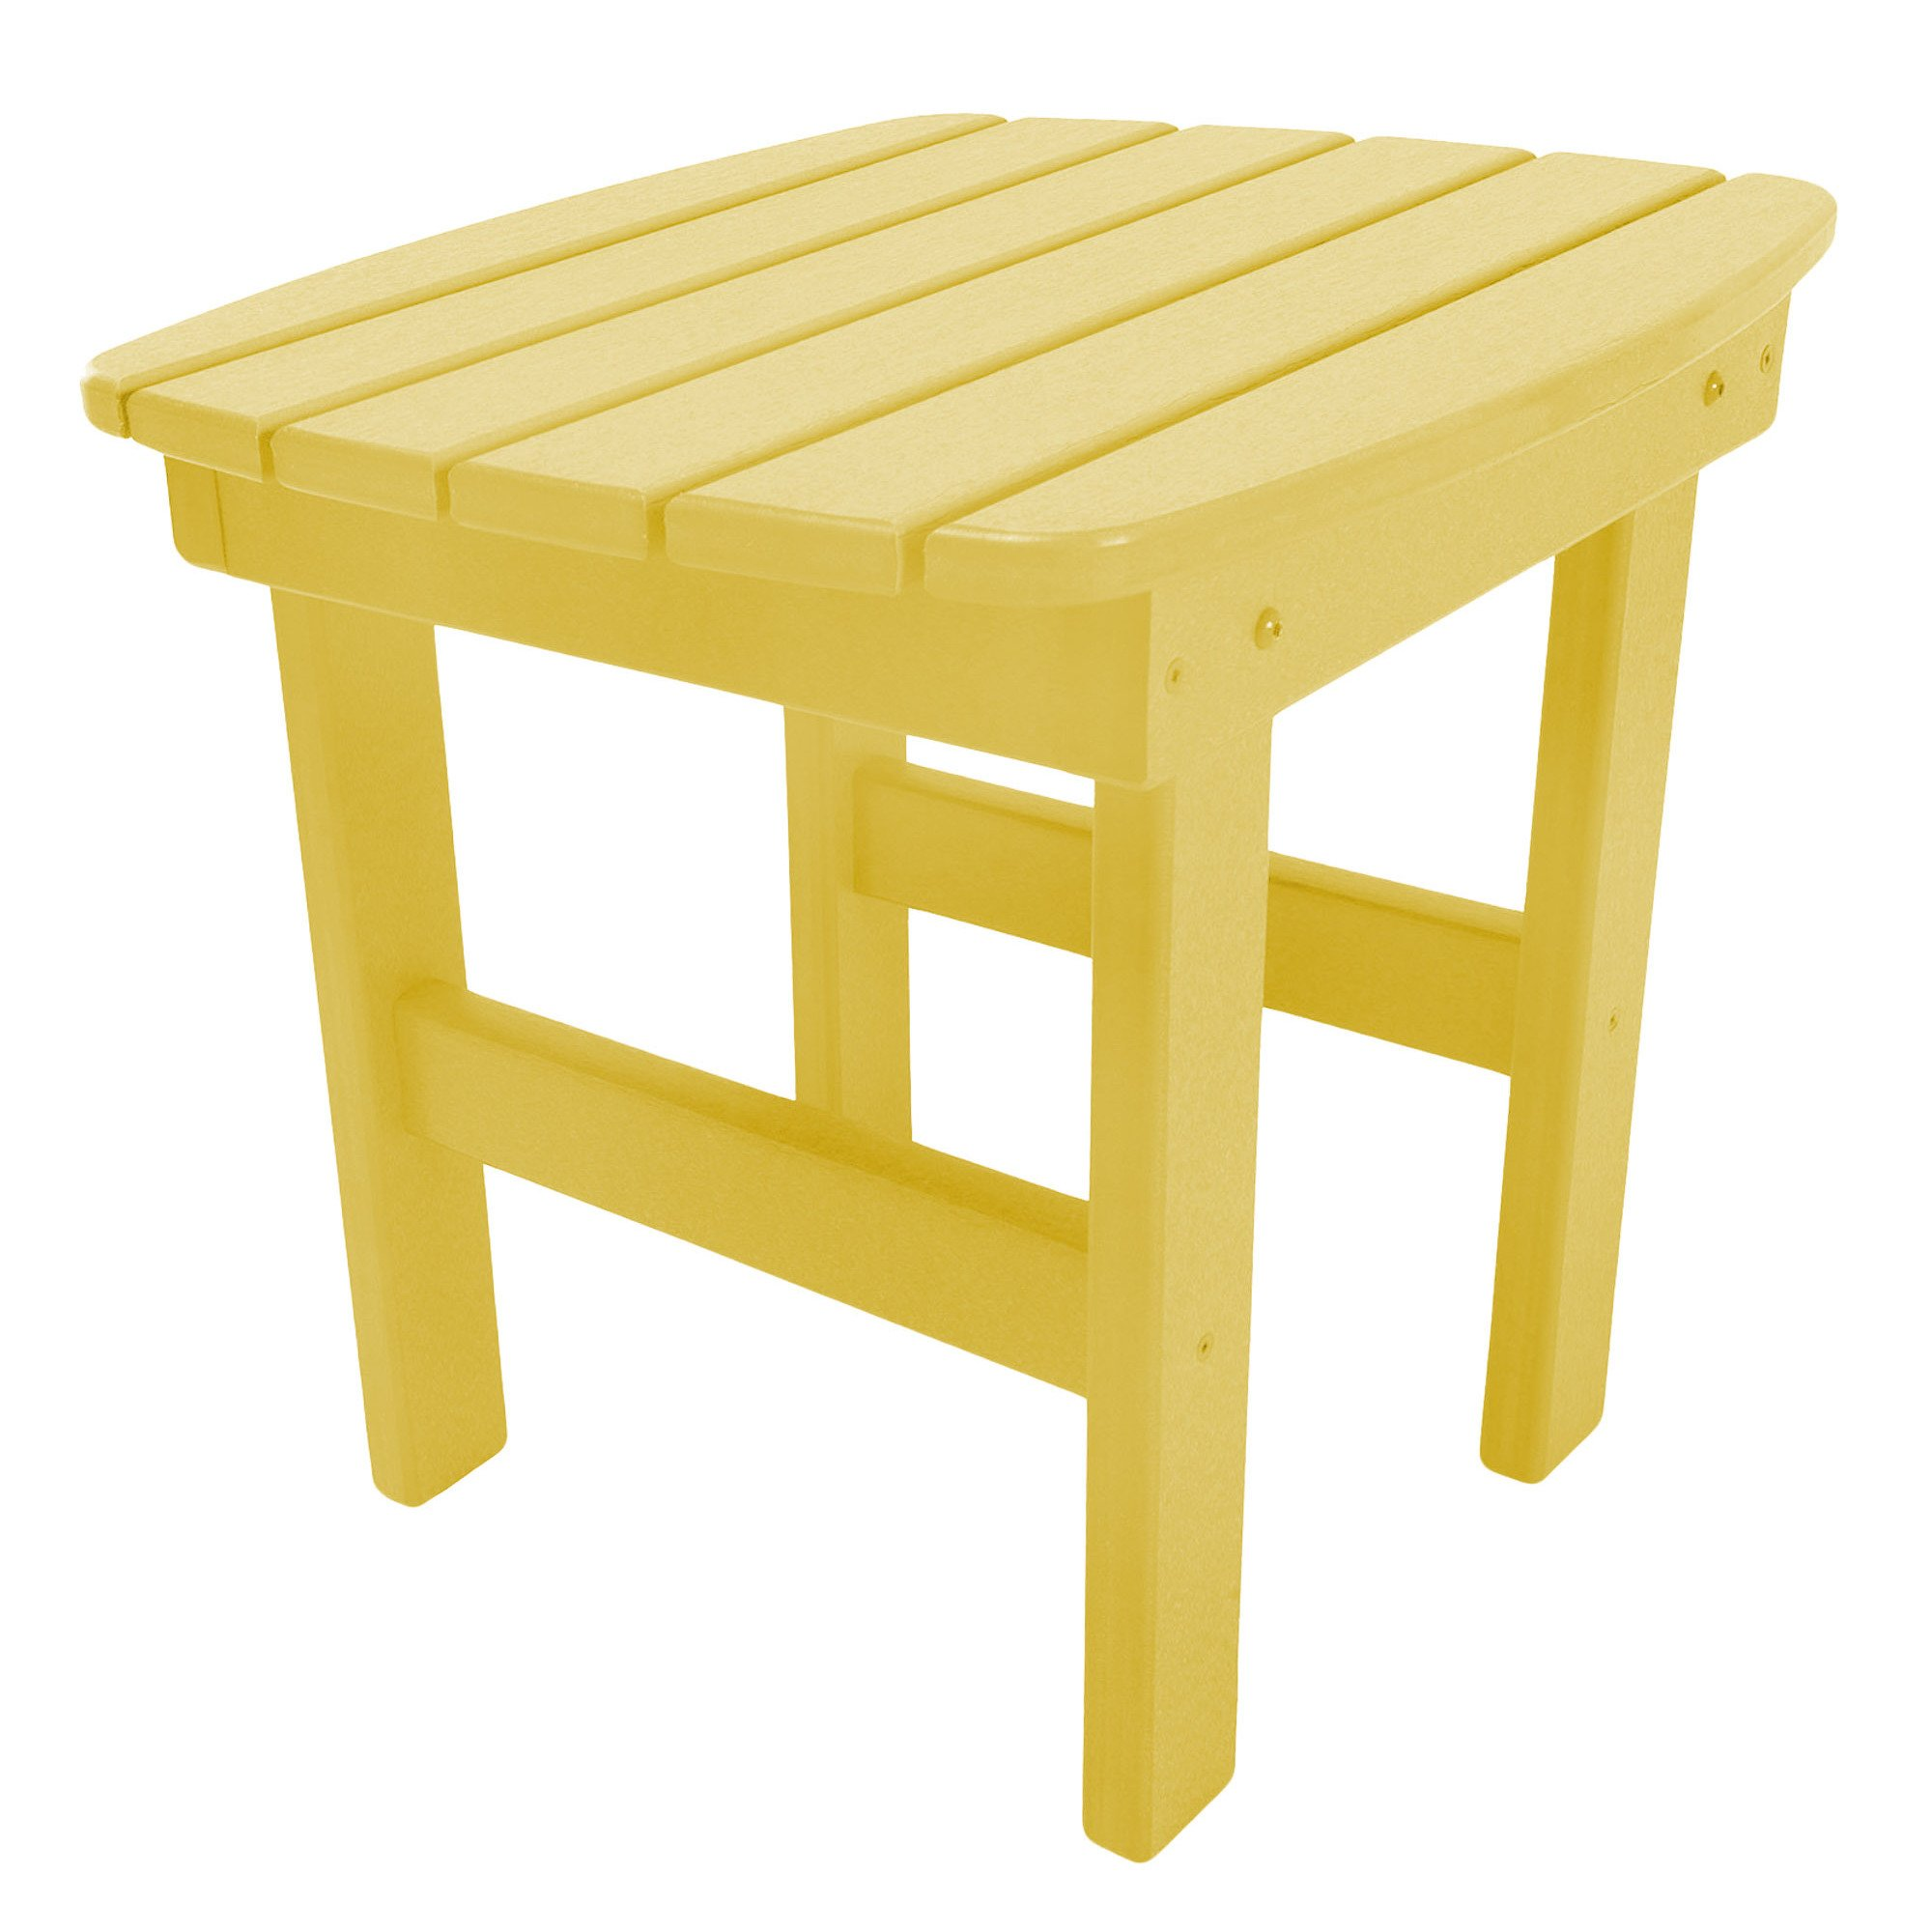 adirondack side table yellow finish free outdoor shipping today grey washed end tables brown wicker and set nate berkus marble offset umbrella hobby lobby sofa battery powered led